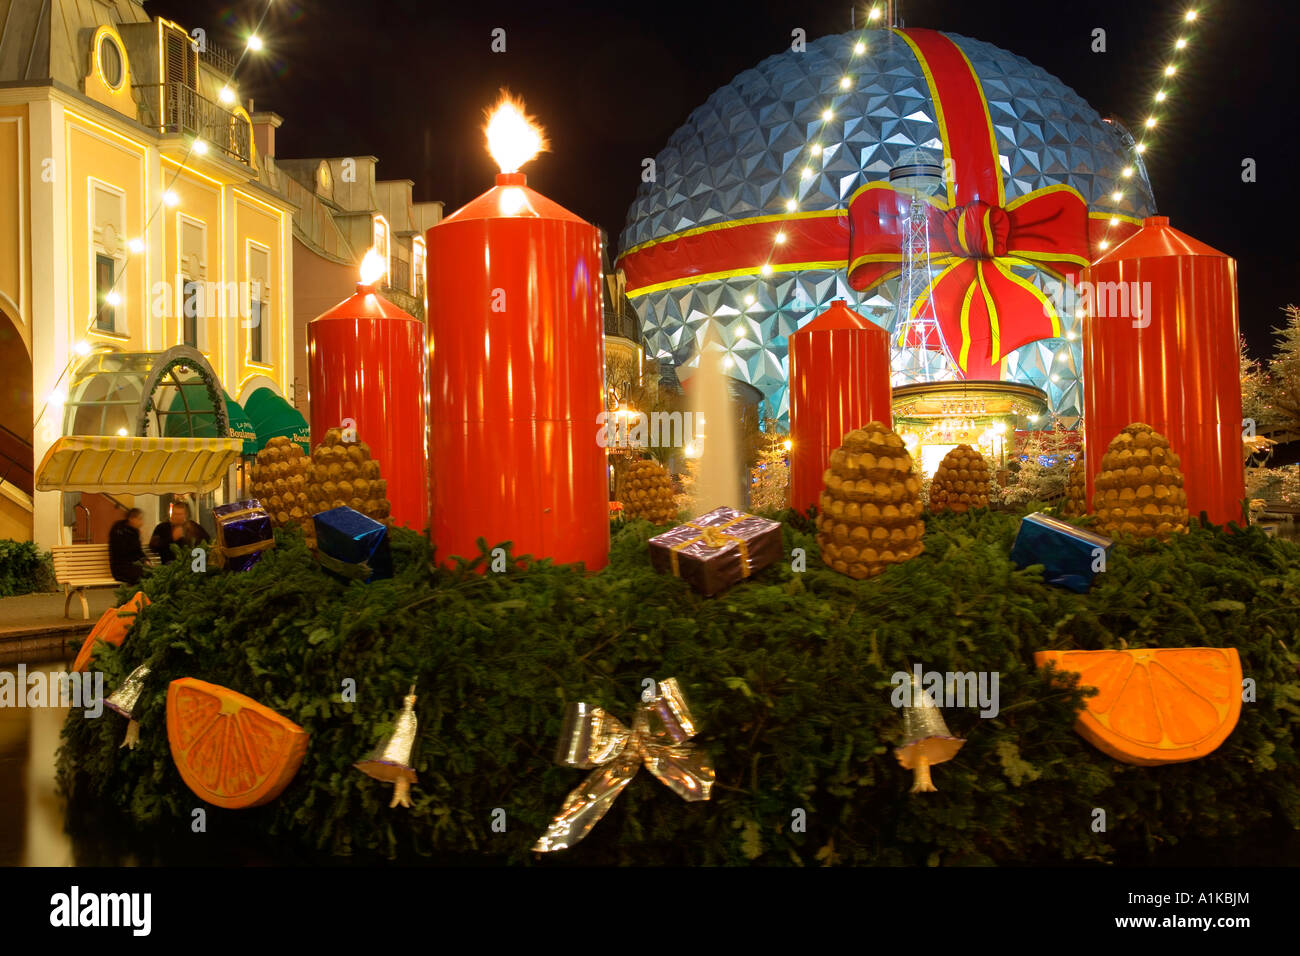 Enormous advent calender, Europa-Park Rust, Baden-Wuerttemberg, Germany - Stock Image